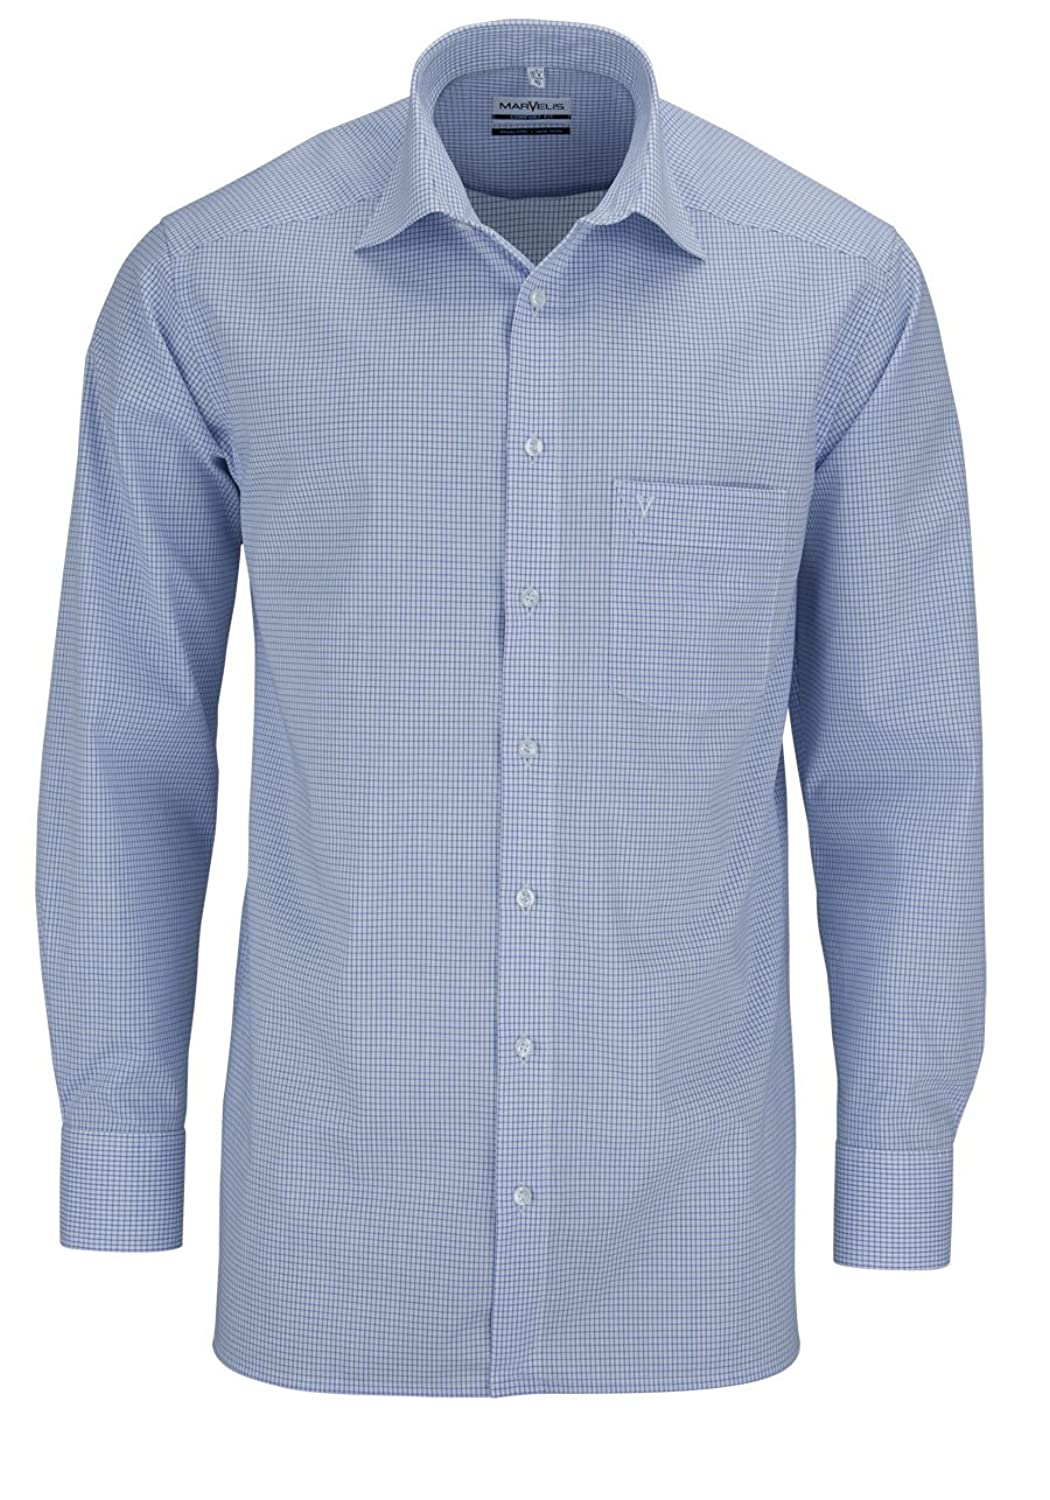 Iron Marvelis Shirt Blue / White Chequered New Kent collar in long (64 CM)